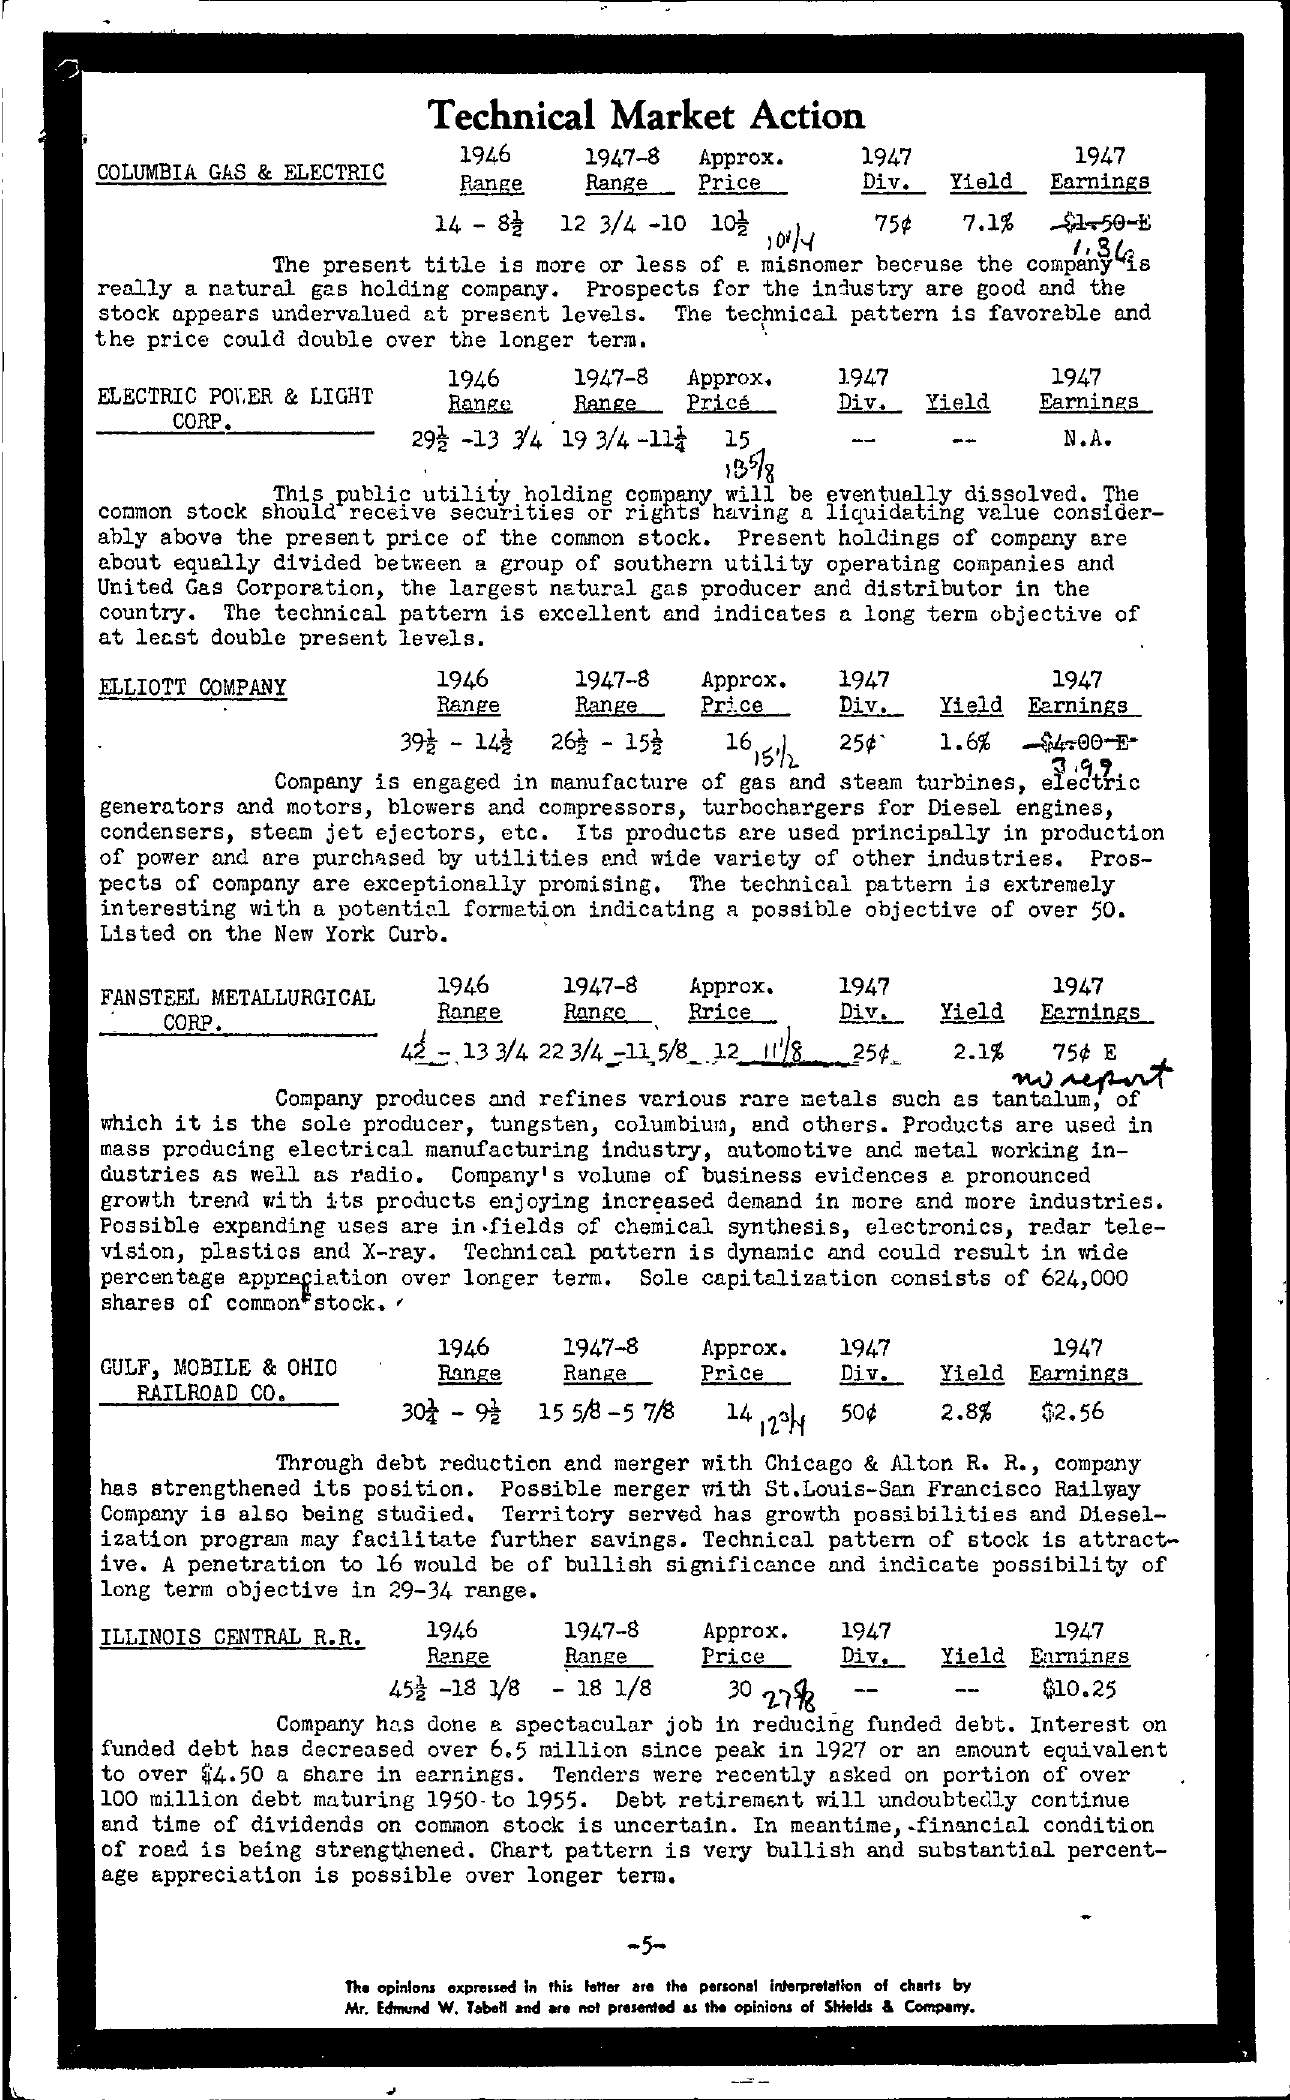 Tabell's Market Letter - February 11, 1948 - Page 5